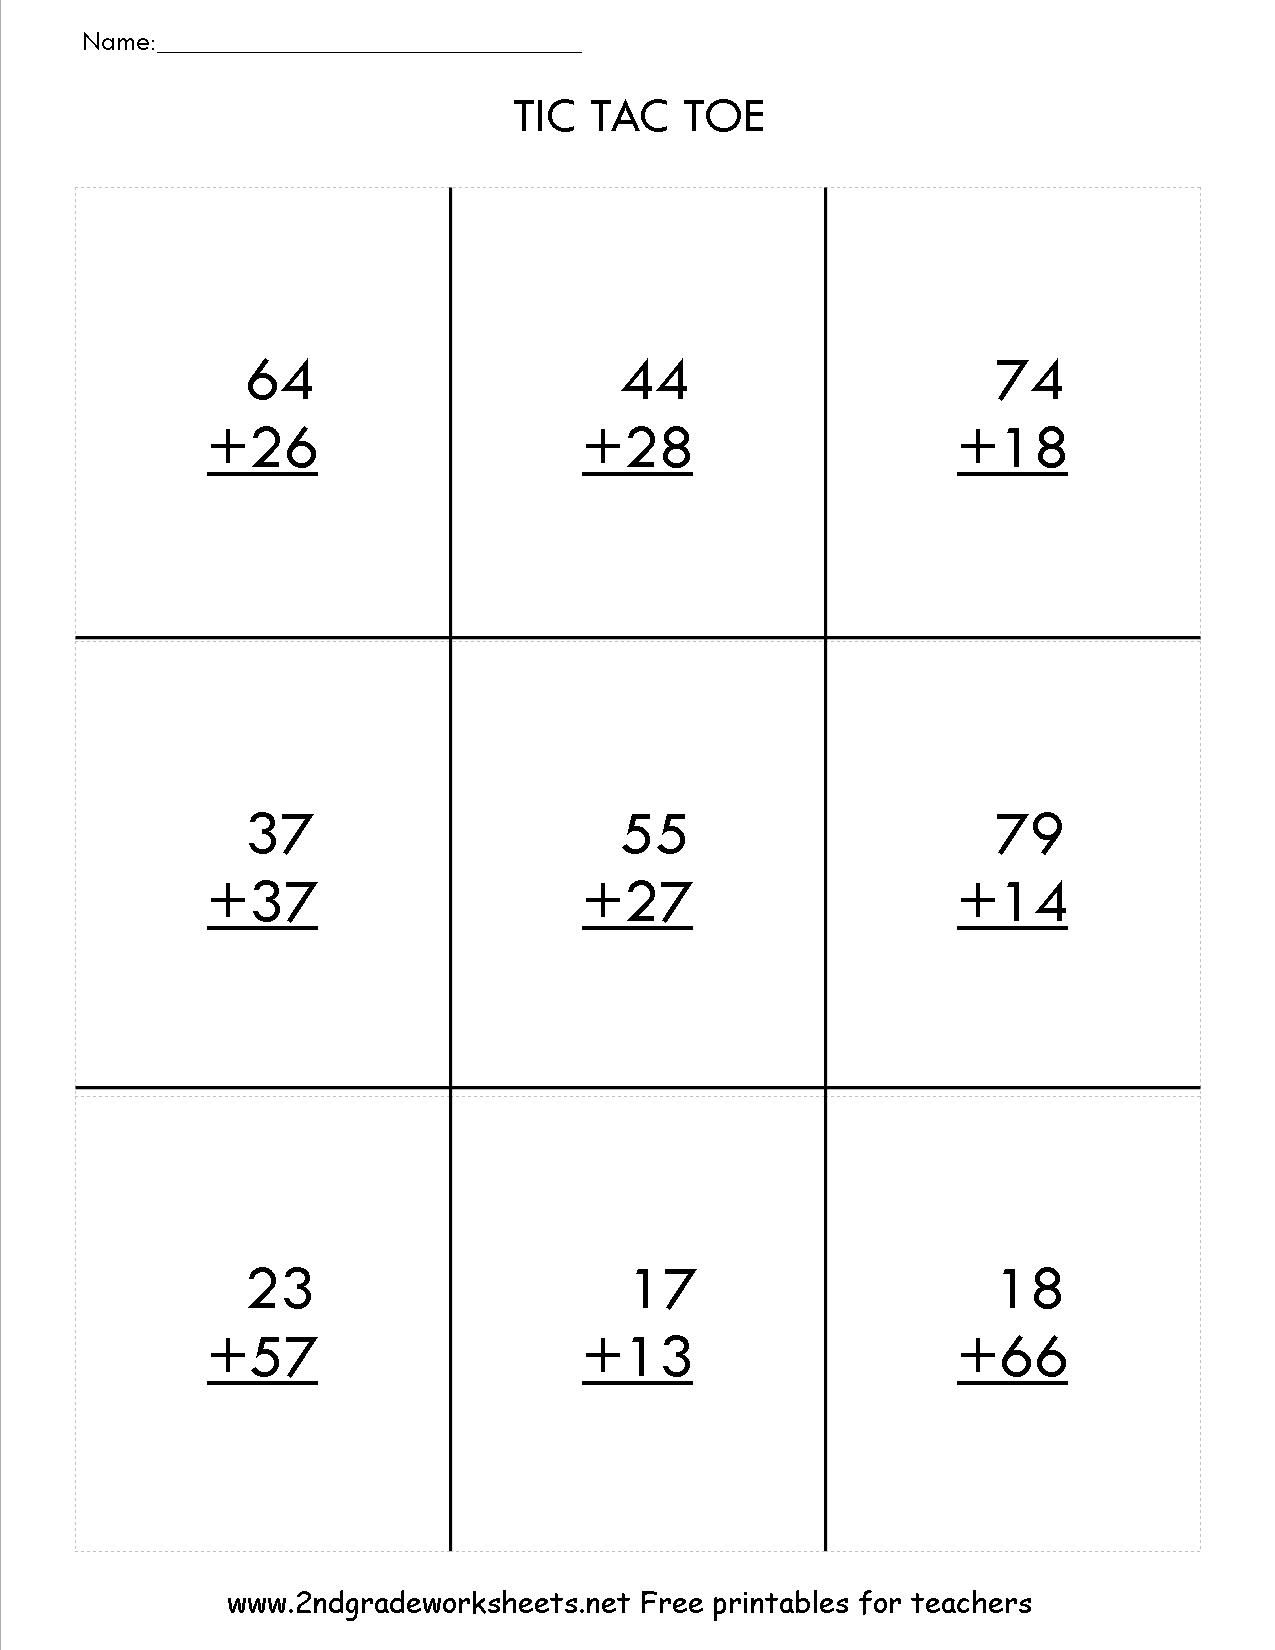 worksheet Addition And Subtraction With Regrouping two digit addition with regrouping tic tac toe game satta game